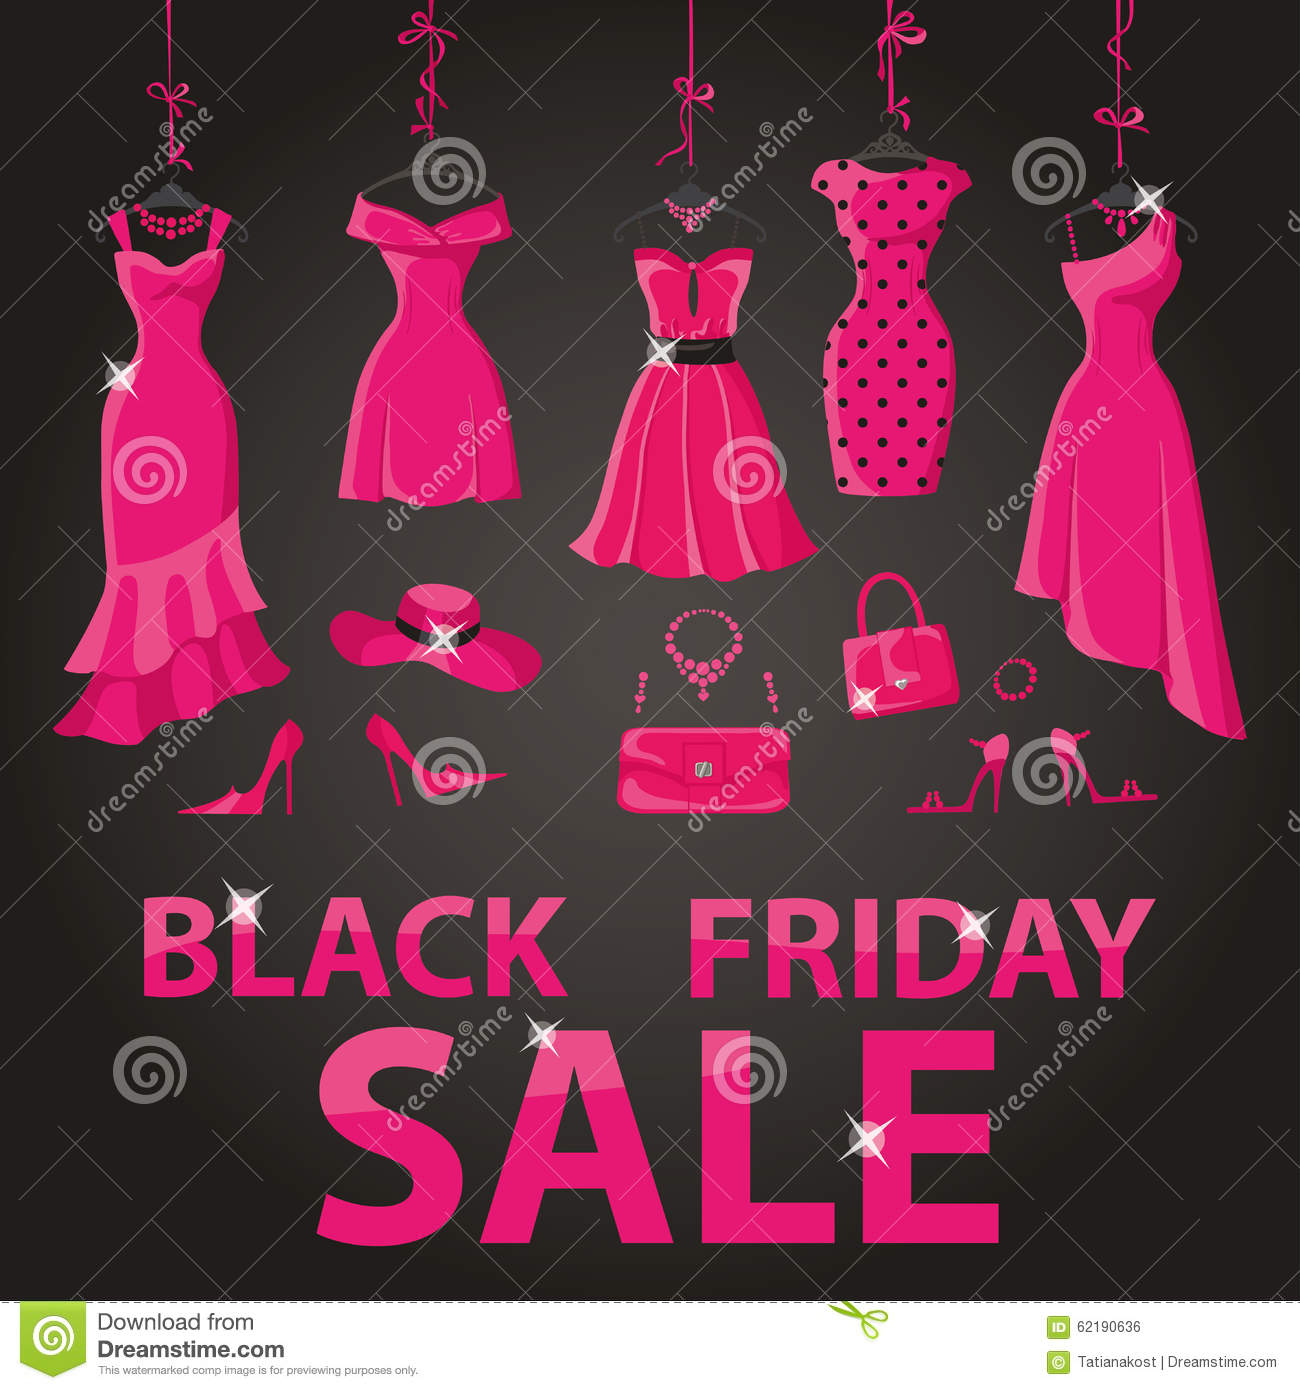 424ed824c0f Black friday Big Sale.Pink party dresses hanging on the ribbon with  accessories and title.Typographic design